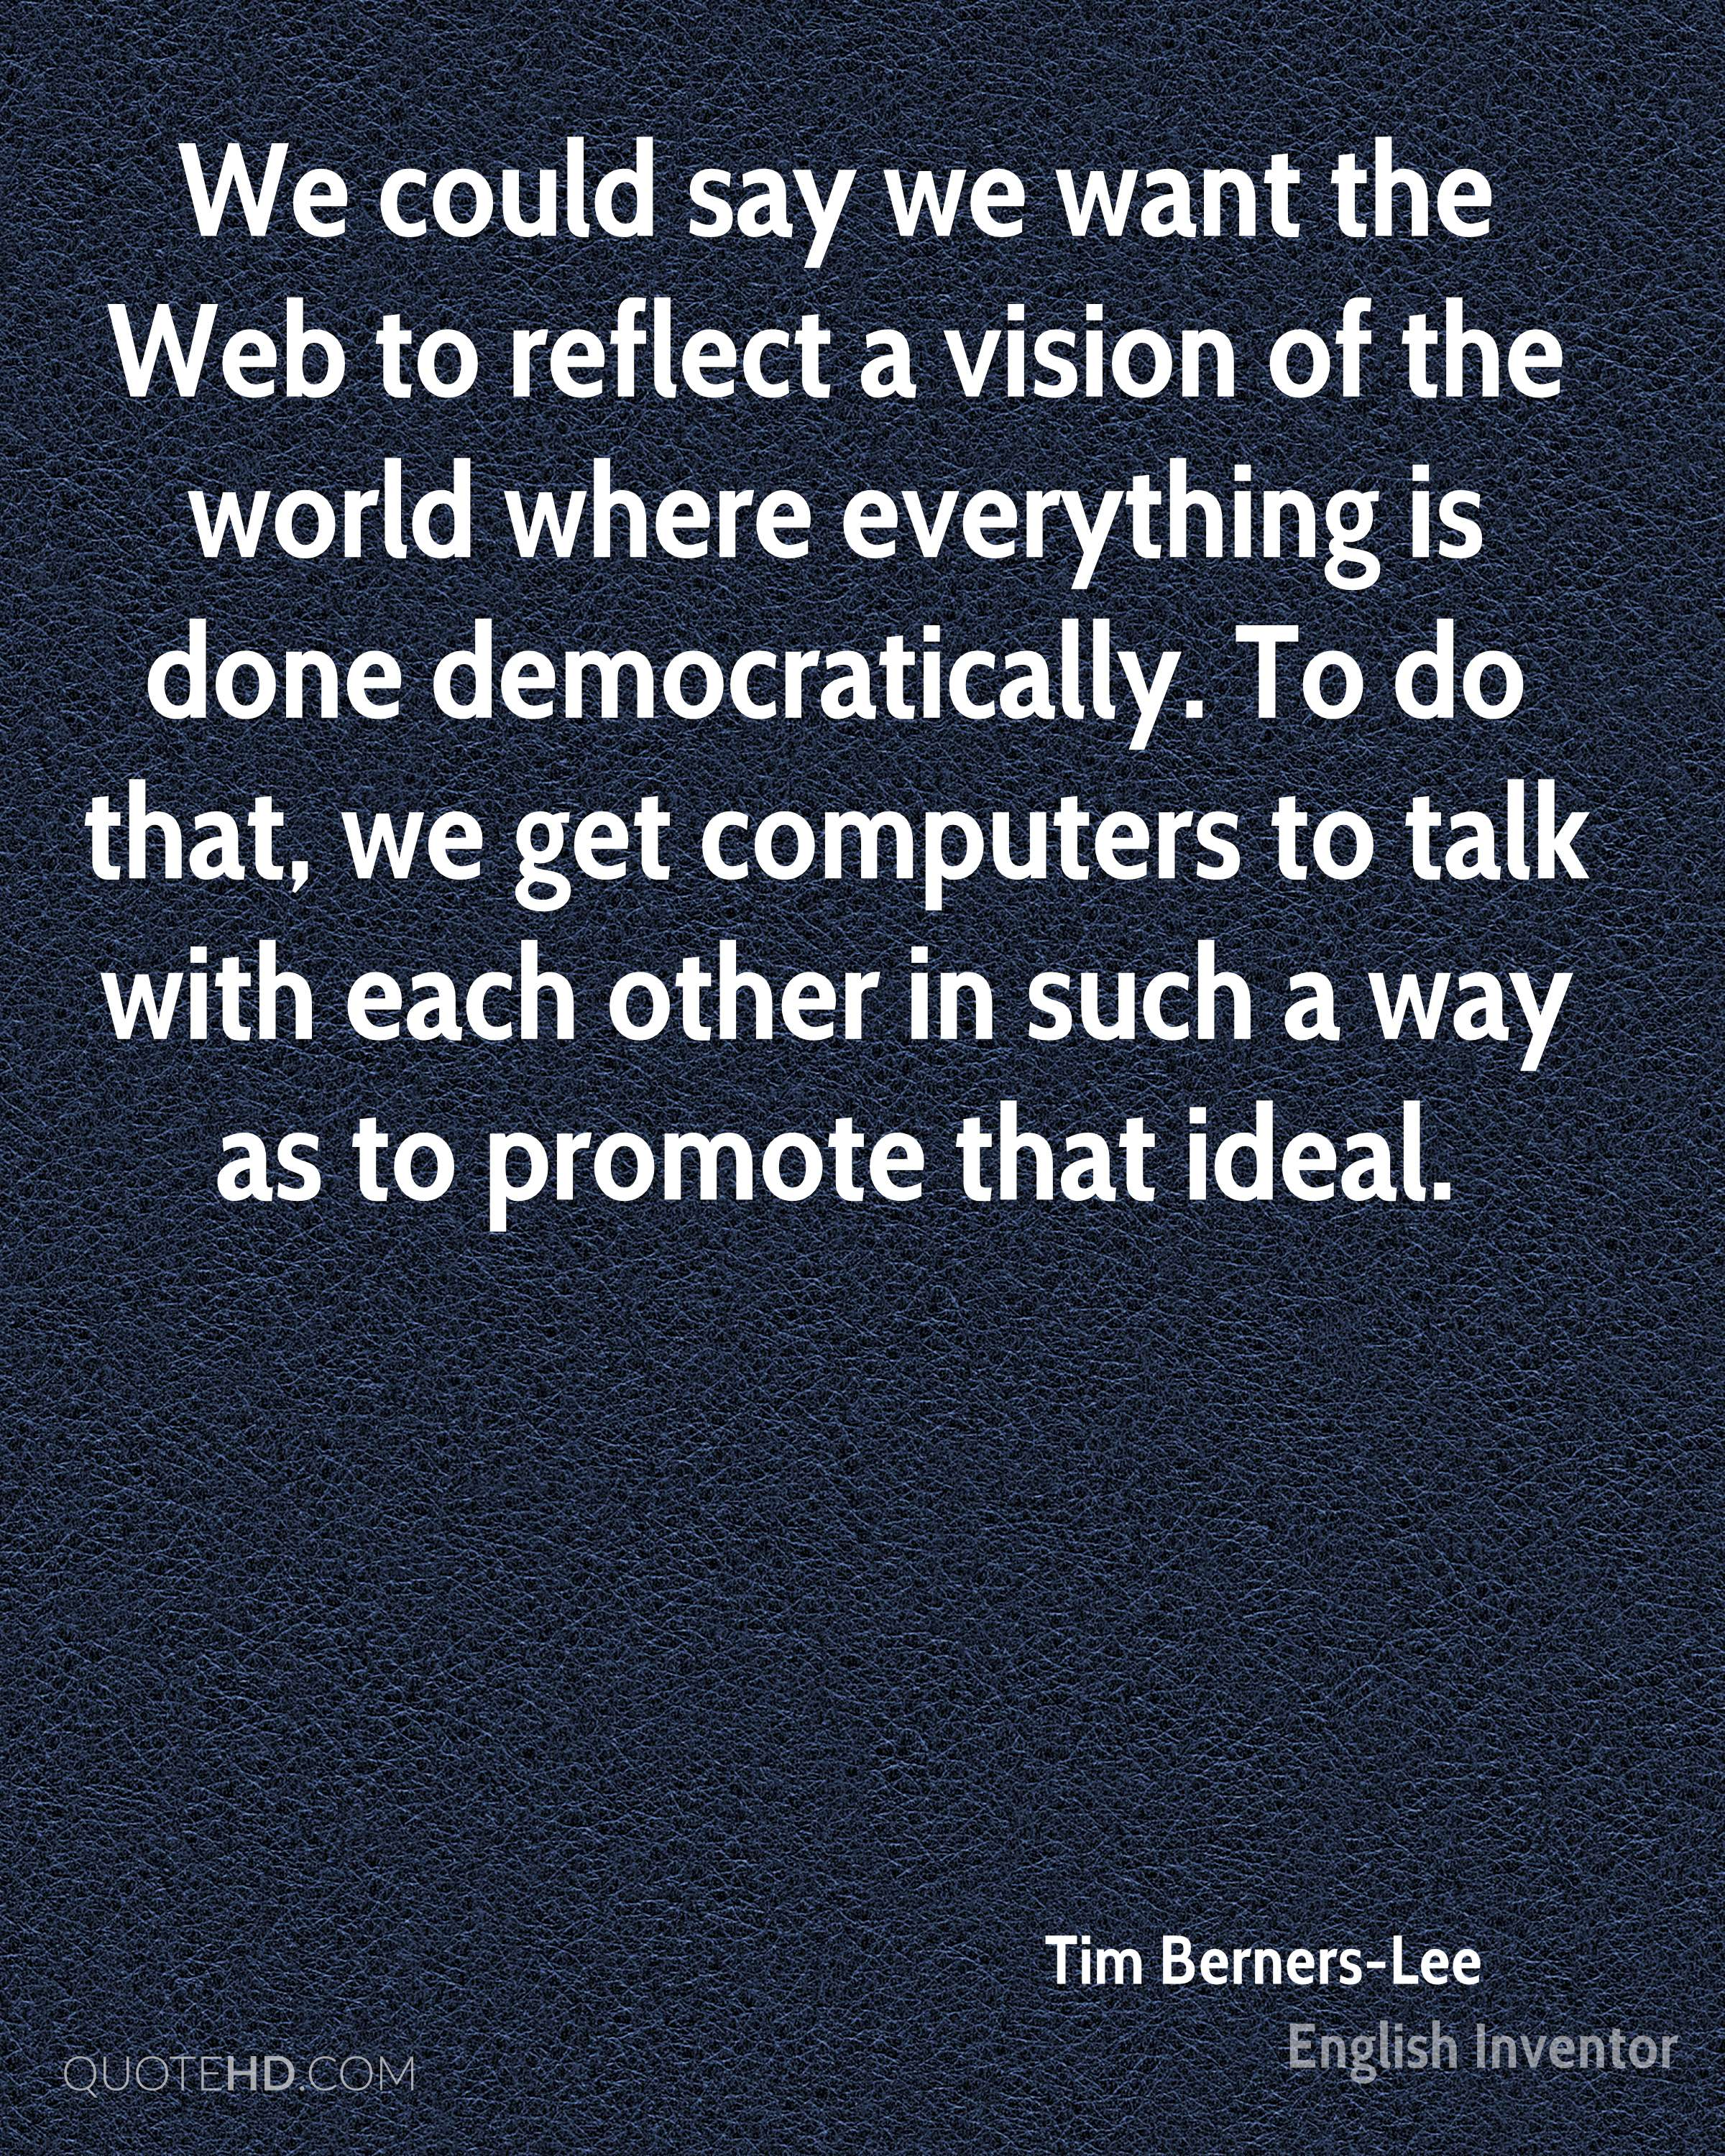 We could say we want the Web to reflect a vision of the world where everything is done democratically. To do that, we get computers to talk with each other in such a way as to promote that ideal.